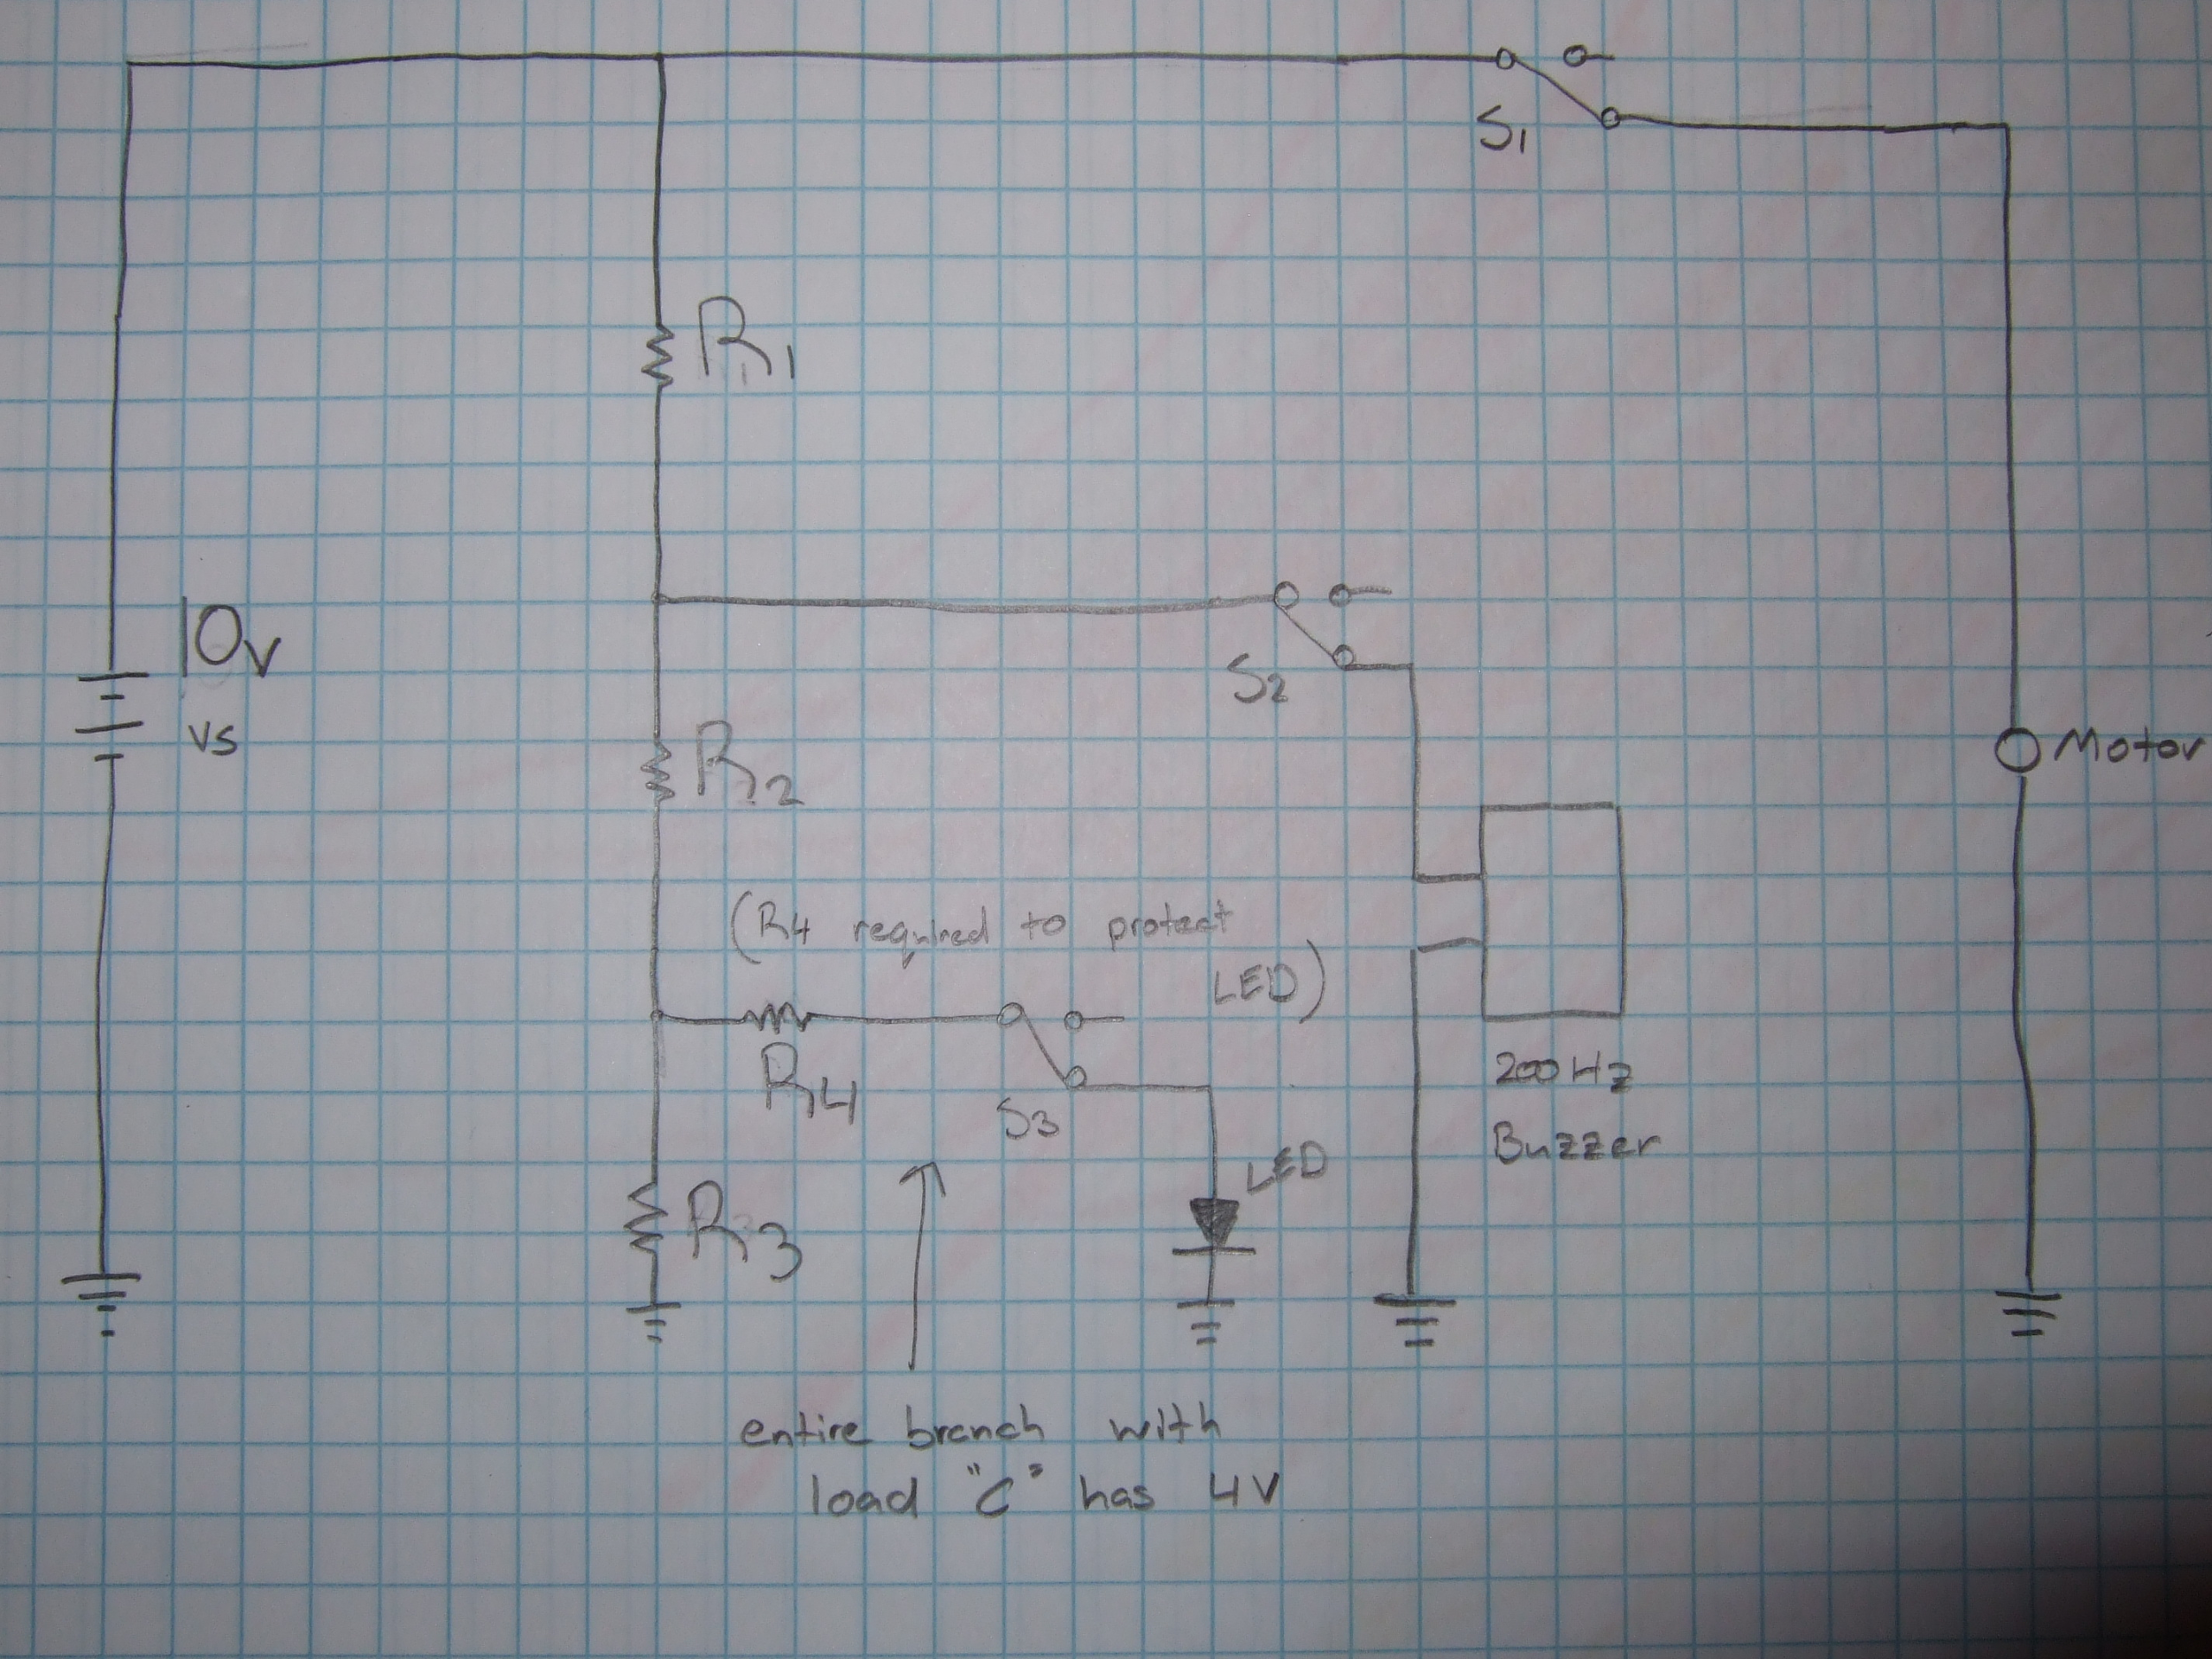 how to find the value of a missing resistor